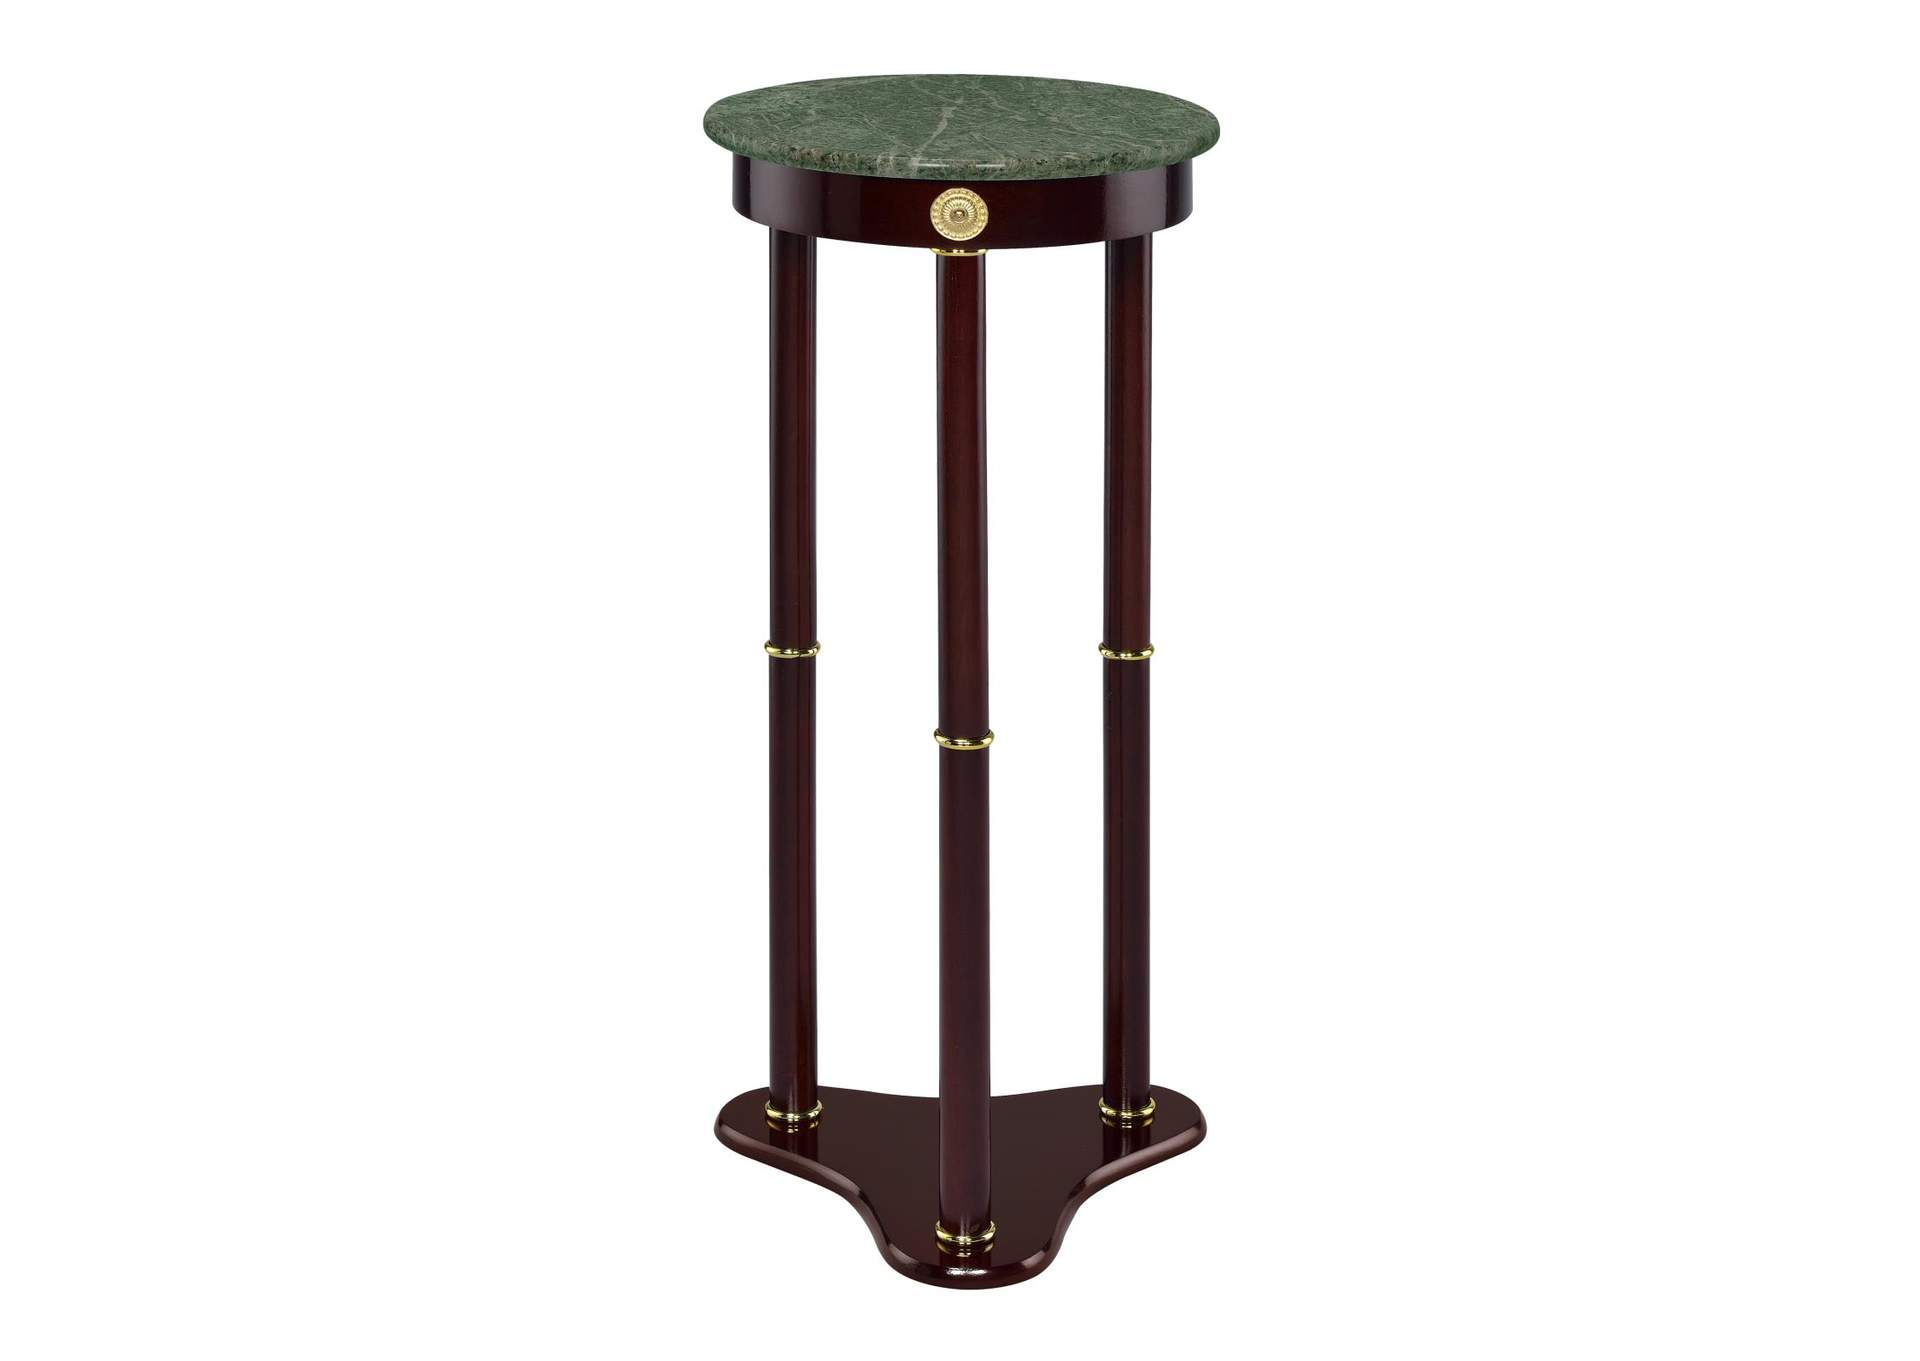 Merlot Traditional Round Plant Stand,Coaster Furniture